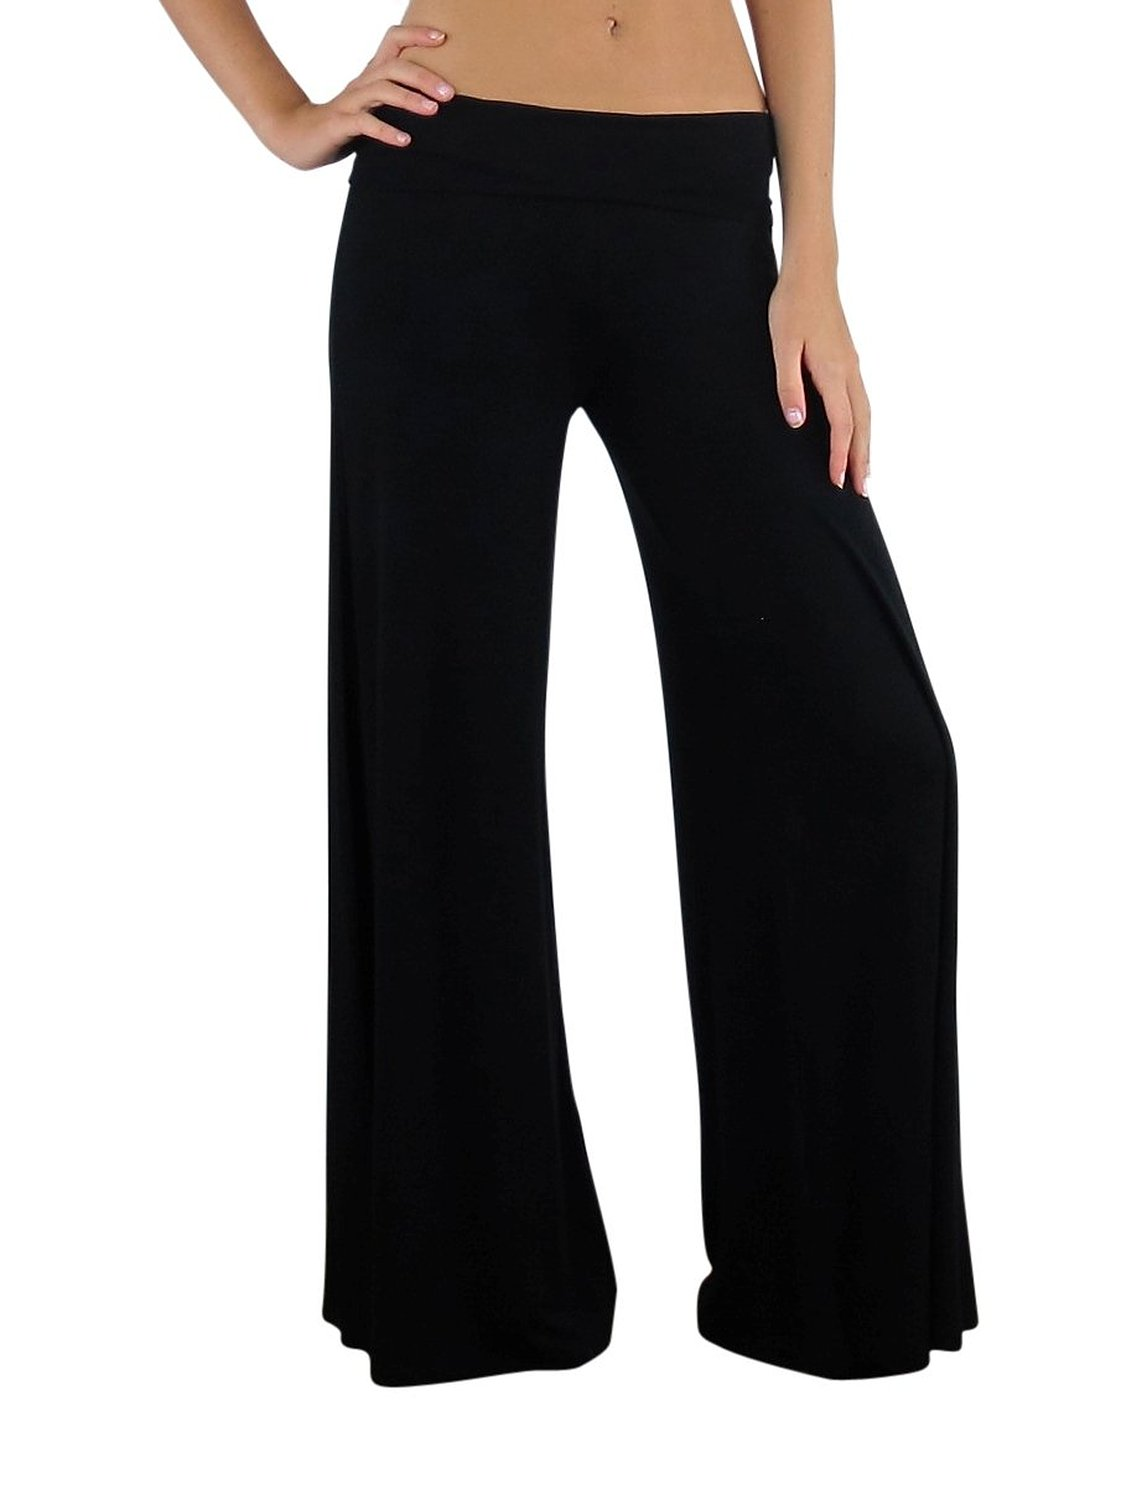 Free to Live Women's Wide Leg Boho Palazzo Gaucho Pants Made in USA at Amazon Women's Clothing store